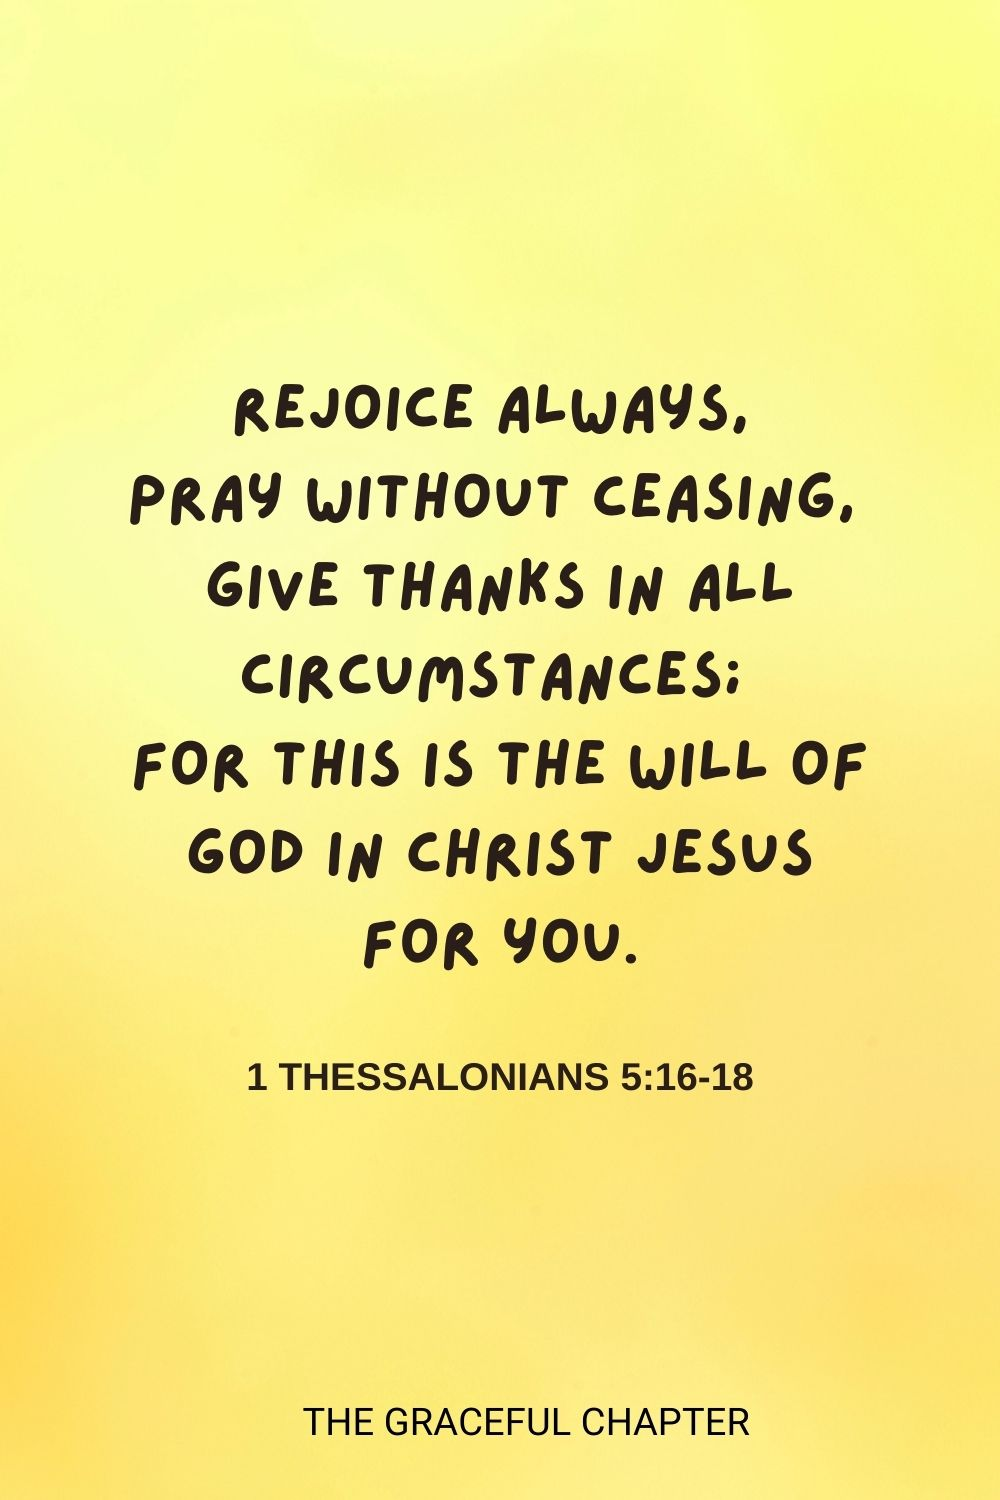 Rejoice always,pray without ceasing, give thanks in all circumstances; for this is the will of God in Christ Jesus for you. 1 Thessalonians 5:16-18